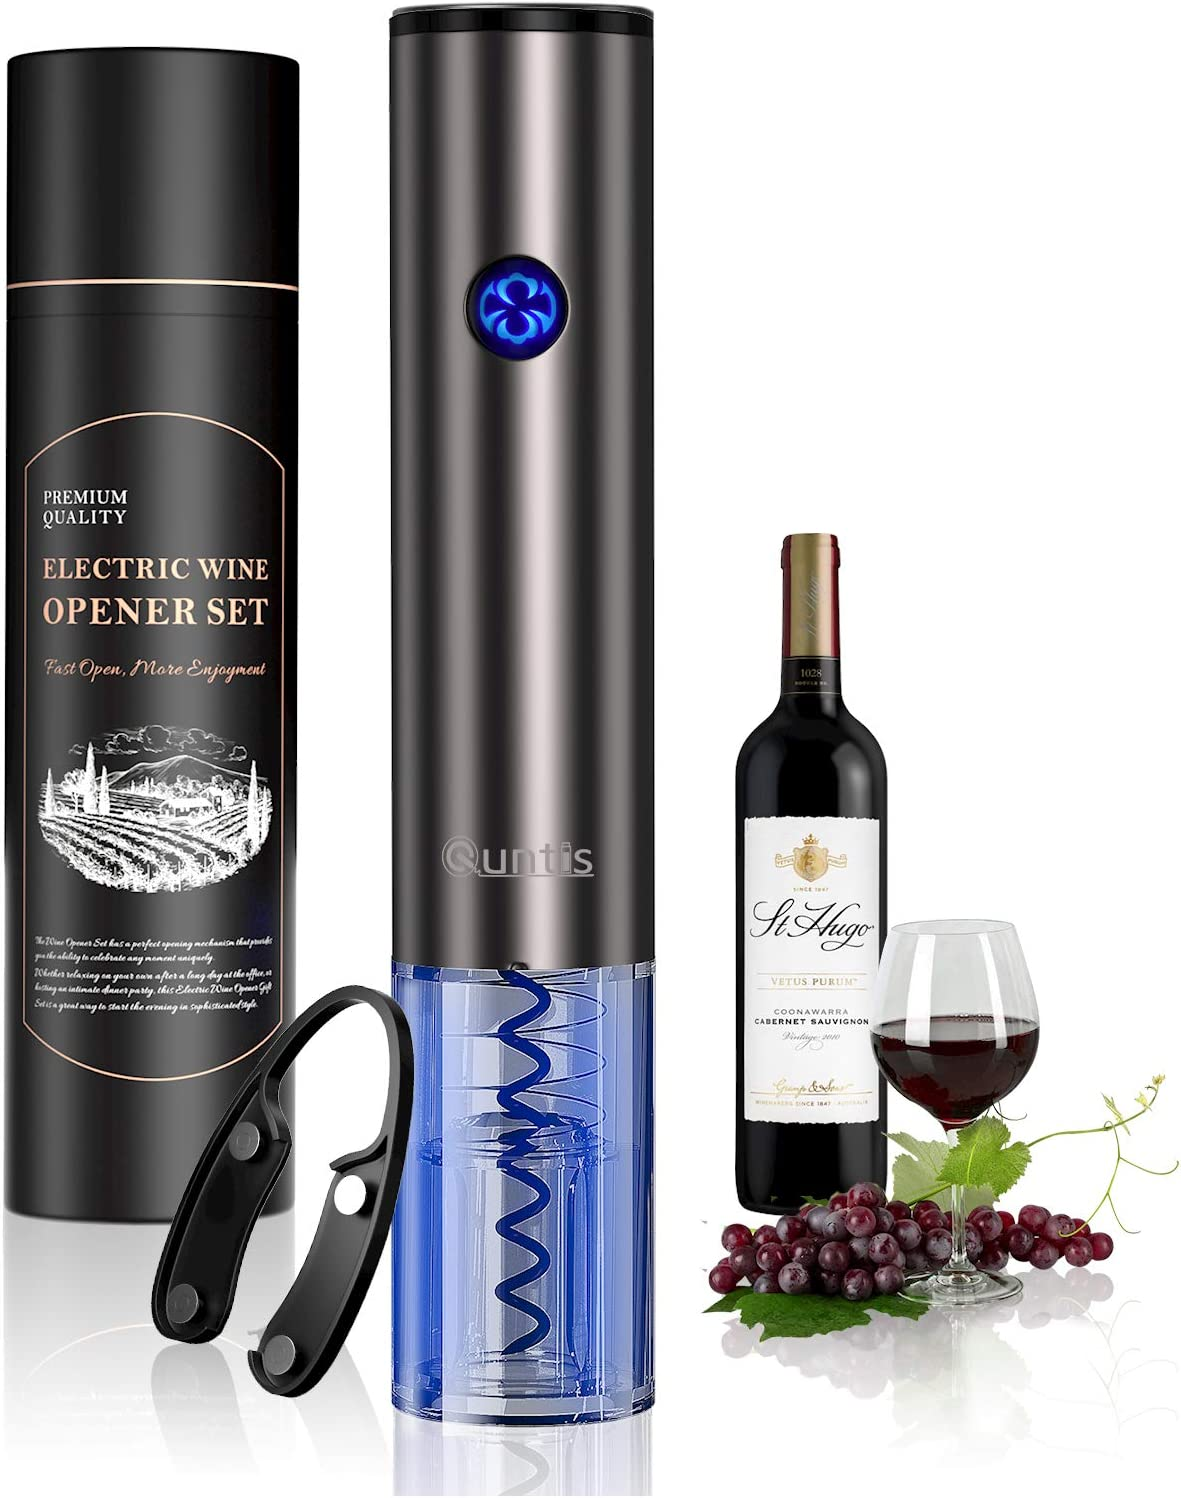 Quntis Electric Wine Opener, Rechargeable Automatic Corkscrew, Touch Sensor Smart Wine Bottle Opener, Wine Lover Gift Set -Thanksgiving Christmas Holiday Kit with Foil Cutter, USB Charging Cable